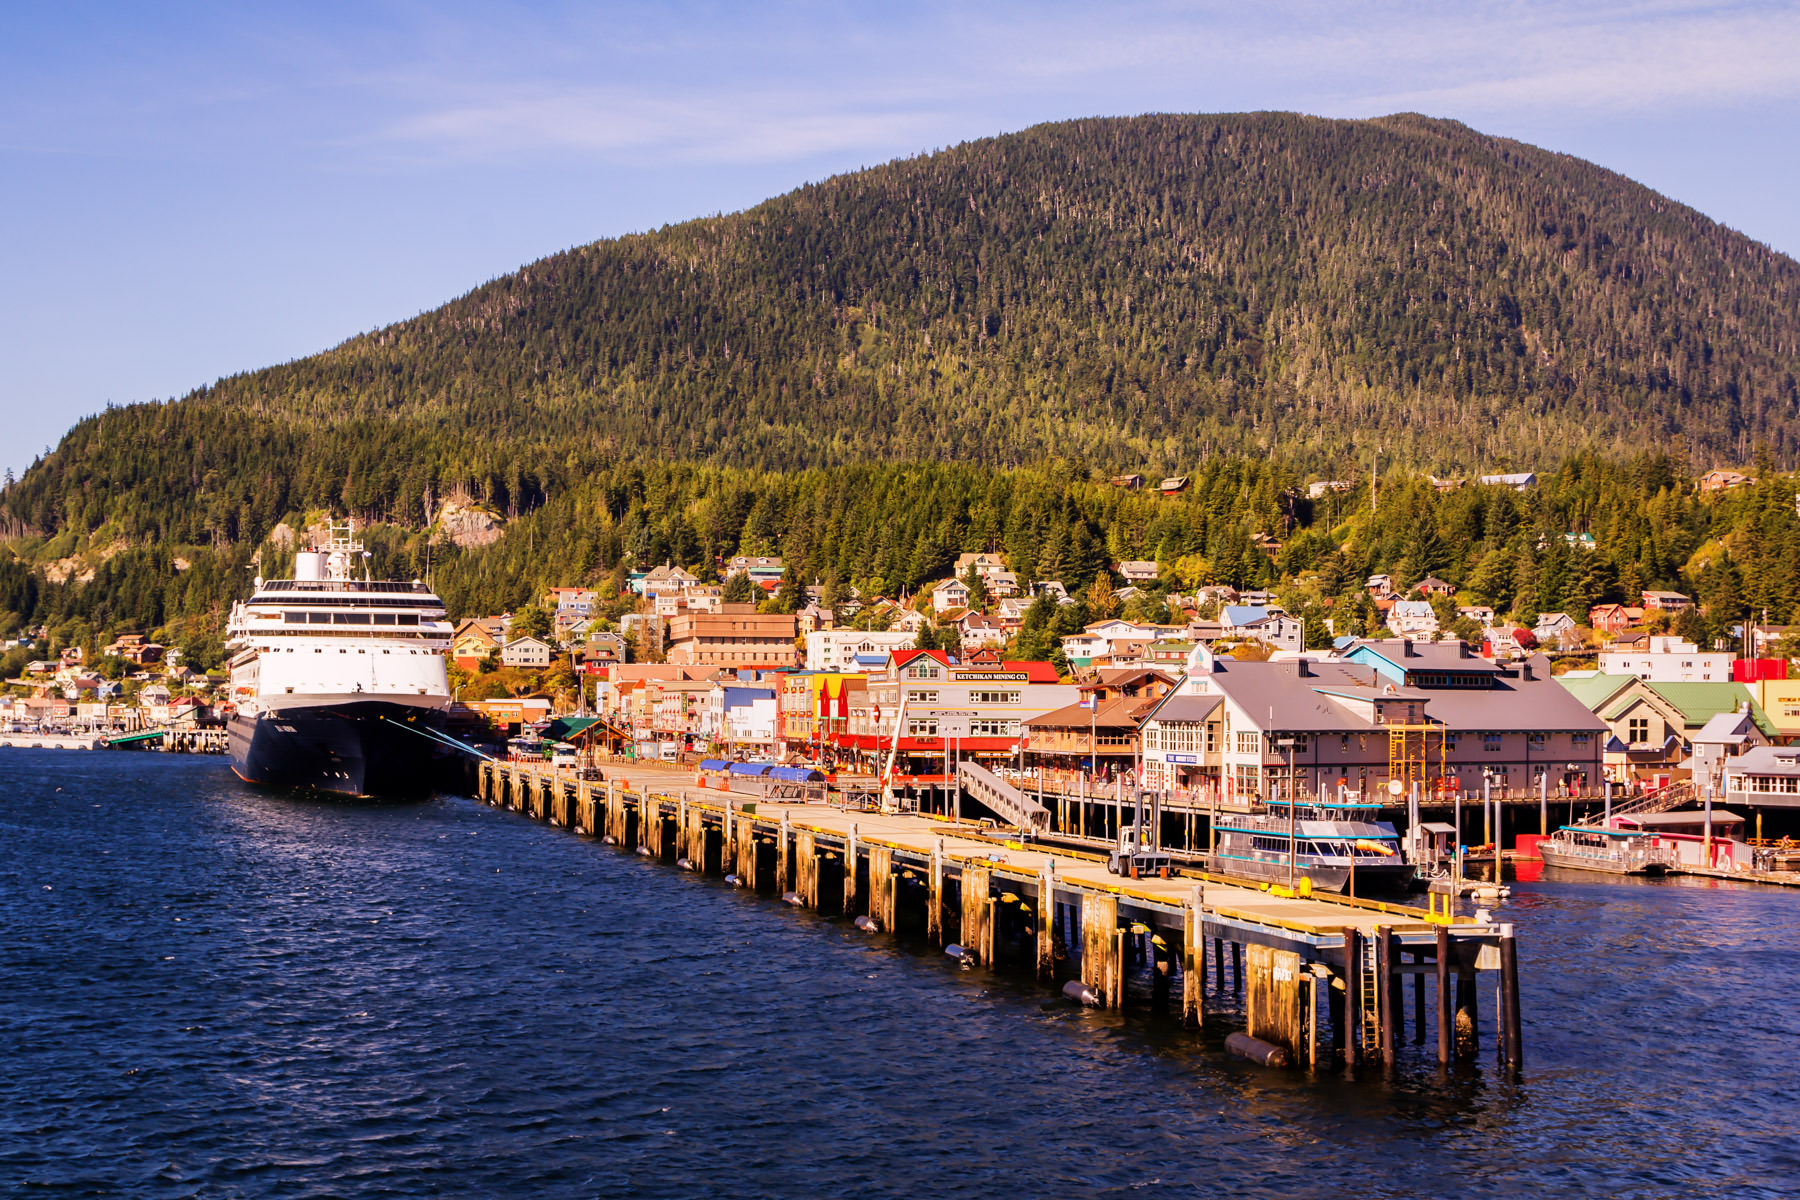 The Holland America Line cruise ship MS Zaandam docked at the cruise ship pier in Ketchikan, Alaska.